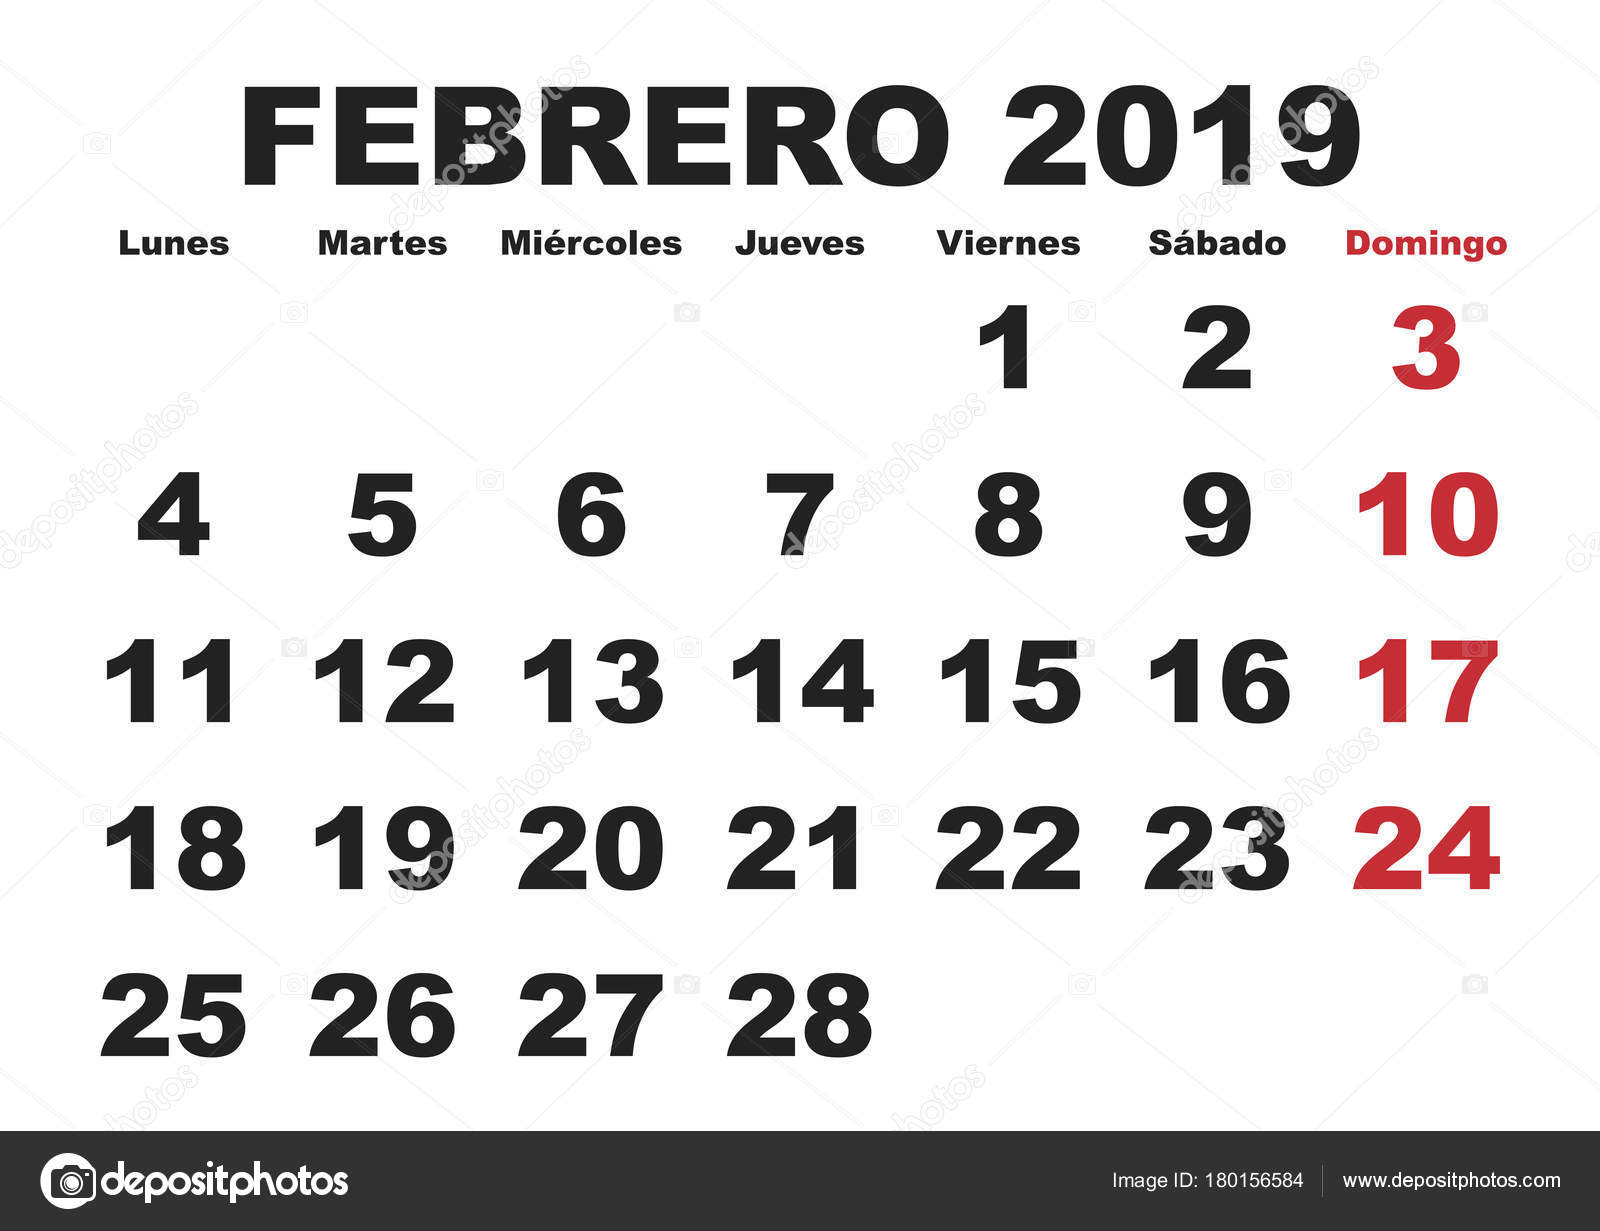 Fotos Febrero Febrero 2019 Pared Calendario Espanol Vector De